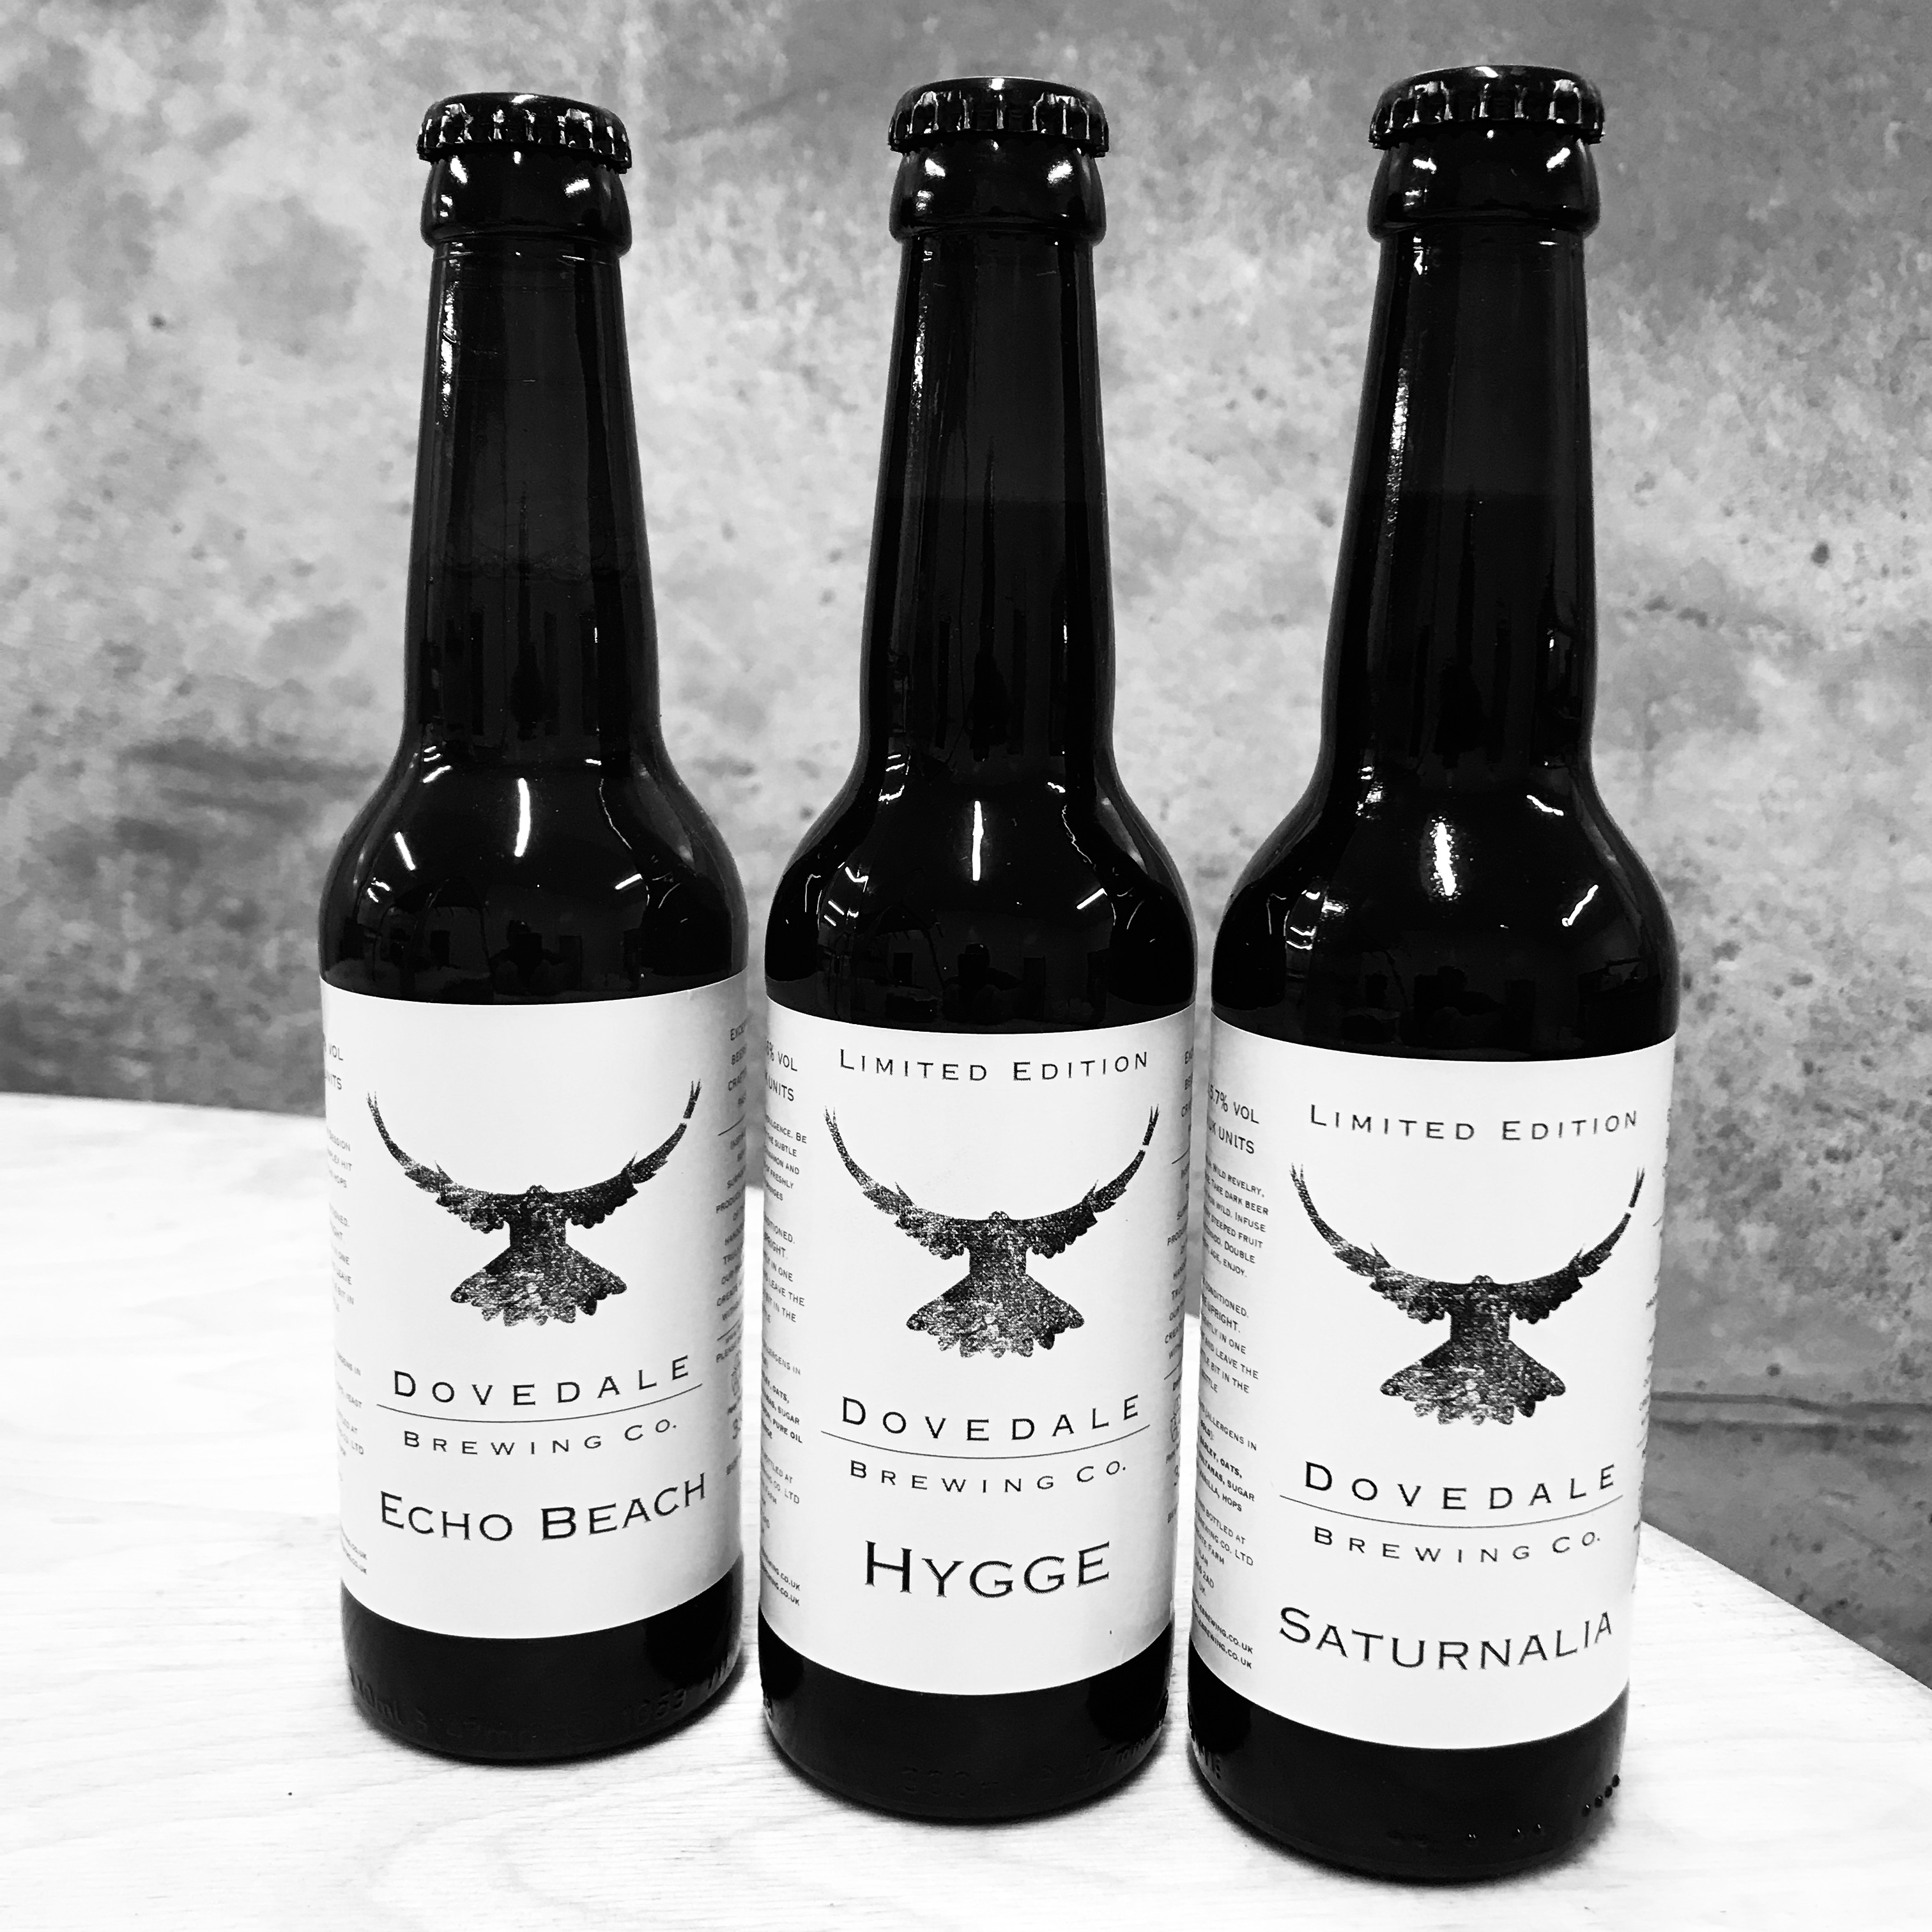 Dovedale Brewing Co.